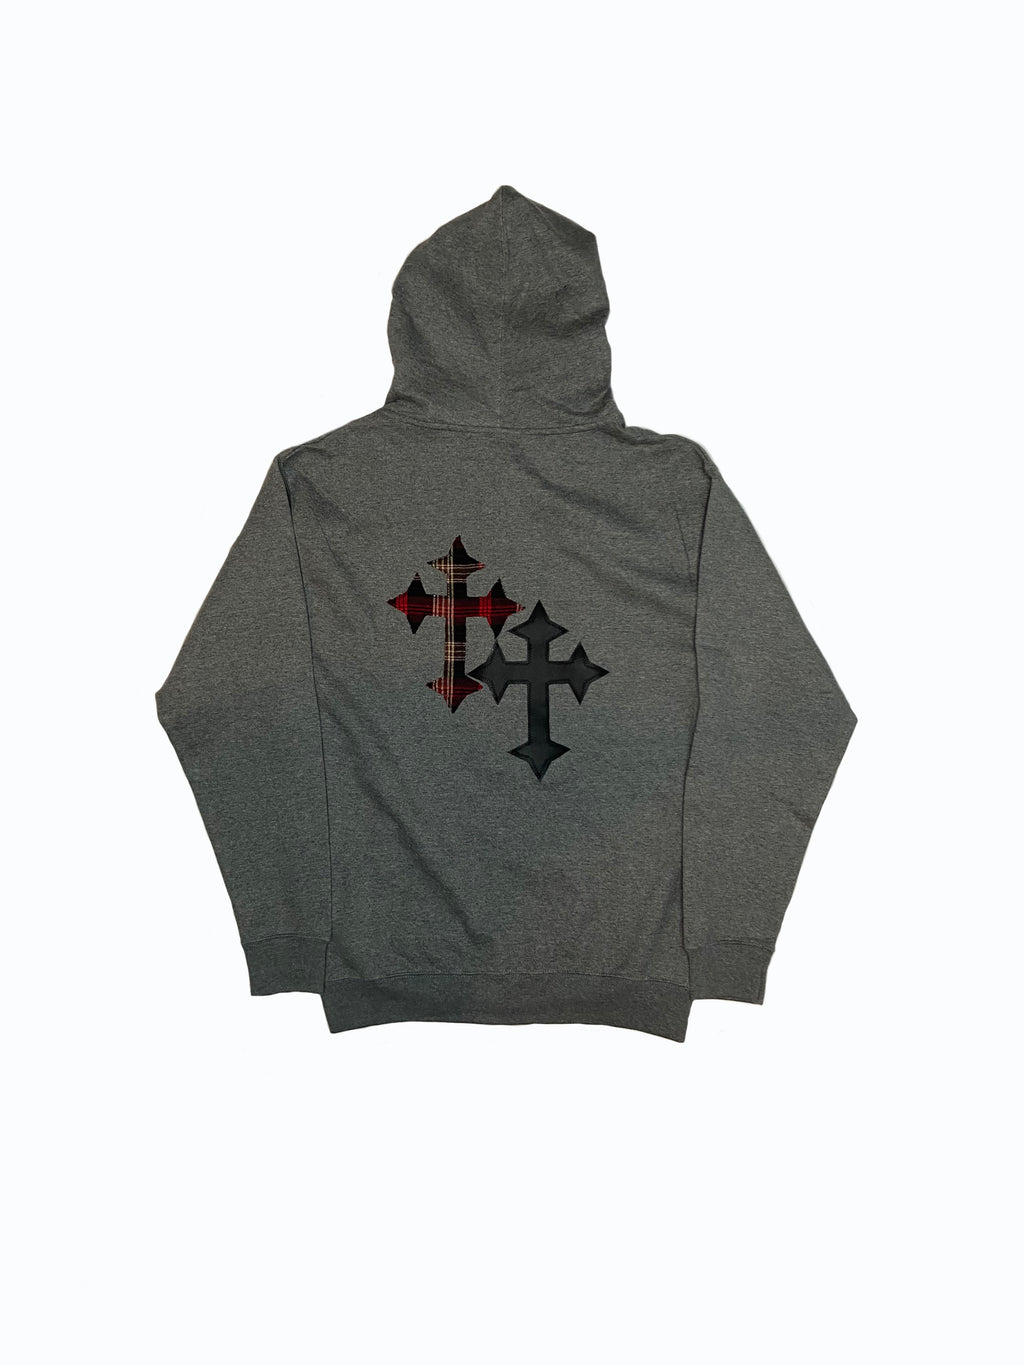 Double Cross Hoodies